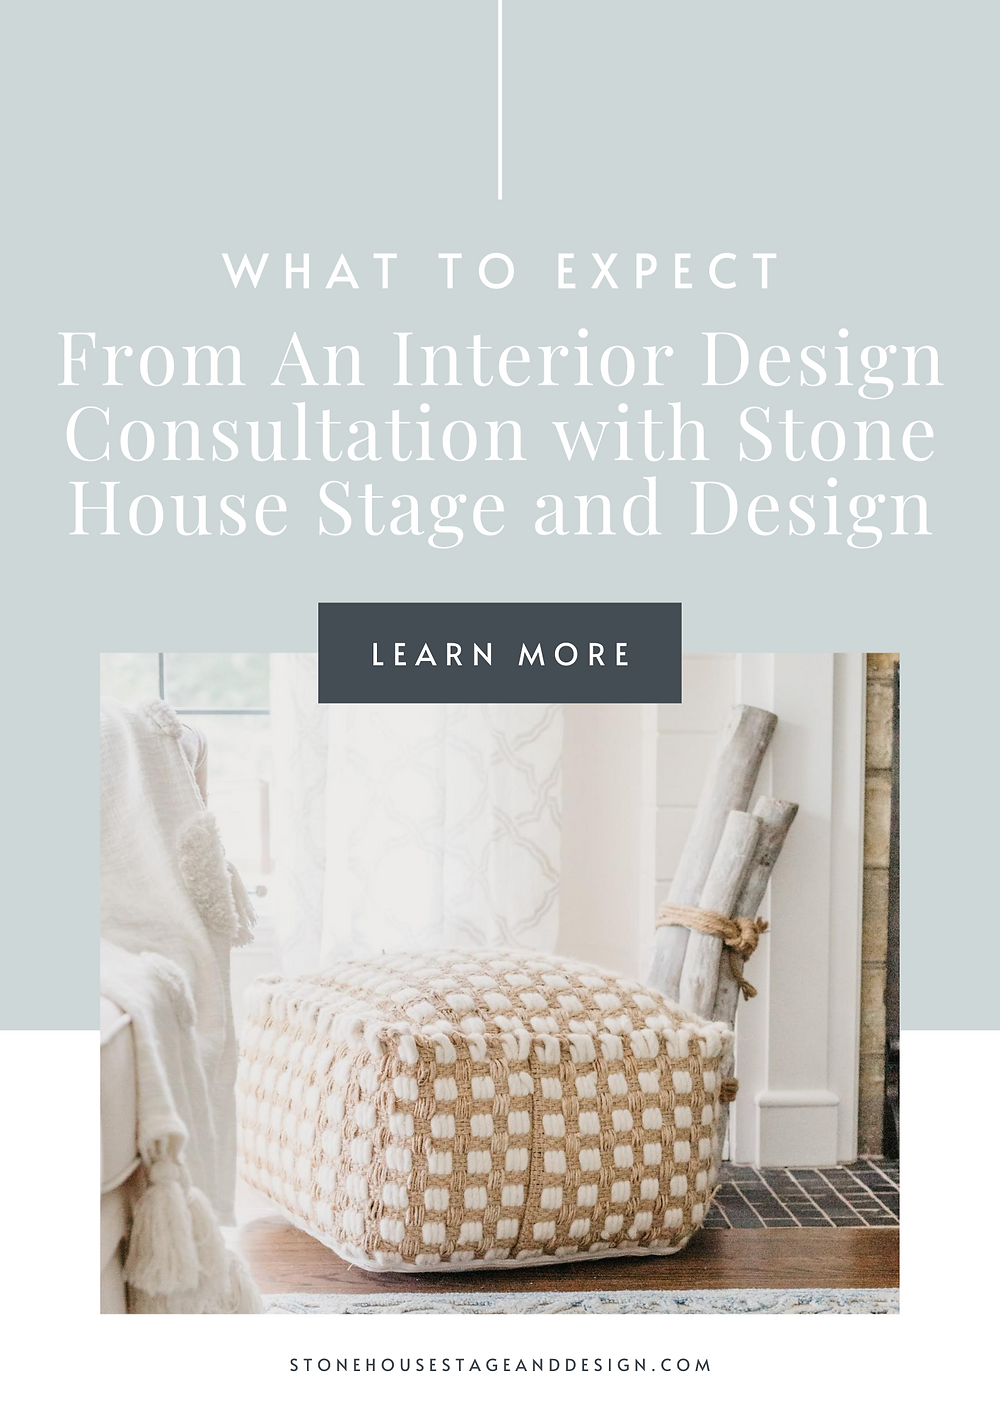 What To Expect from an interior design consultation with stone house